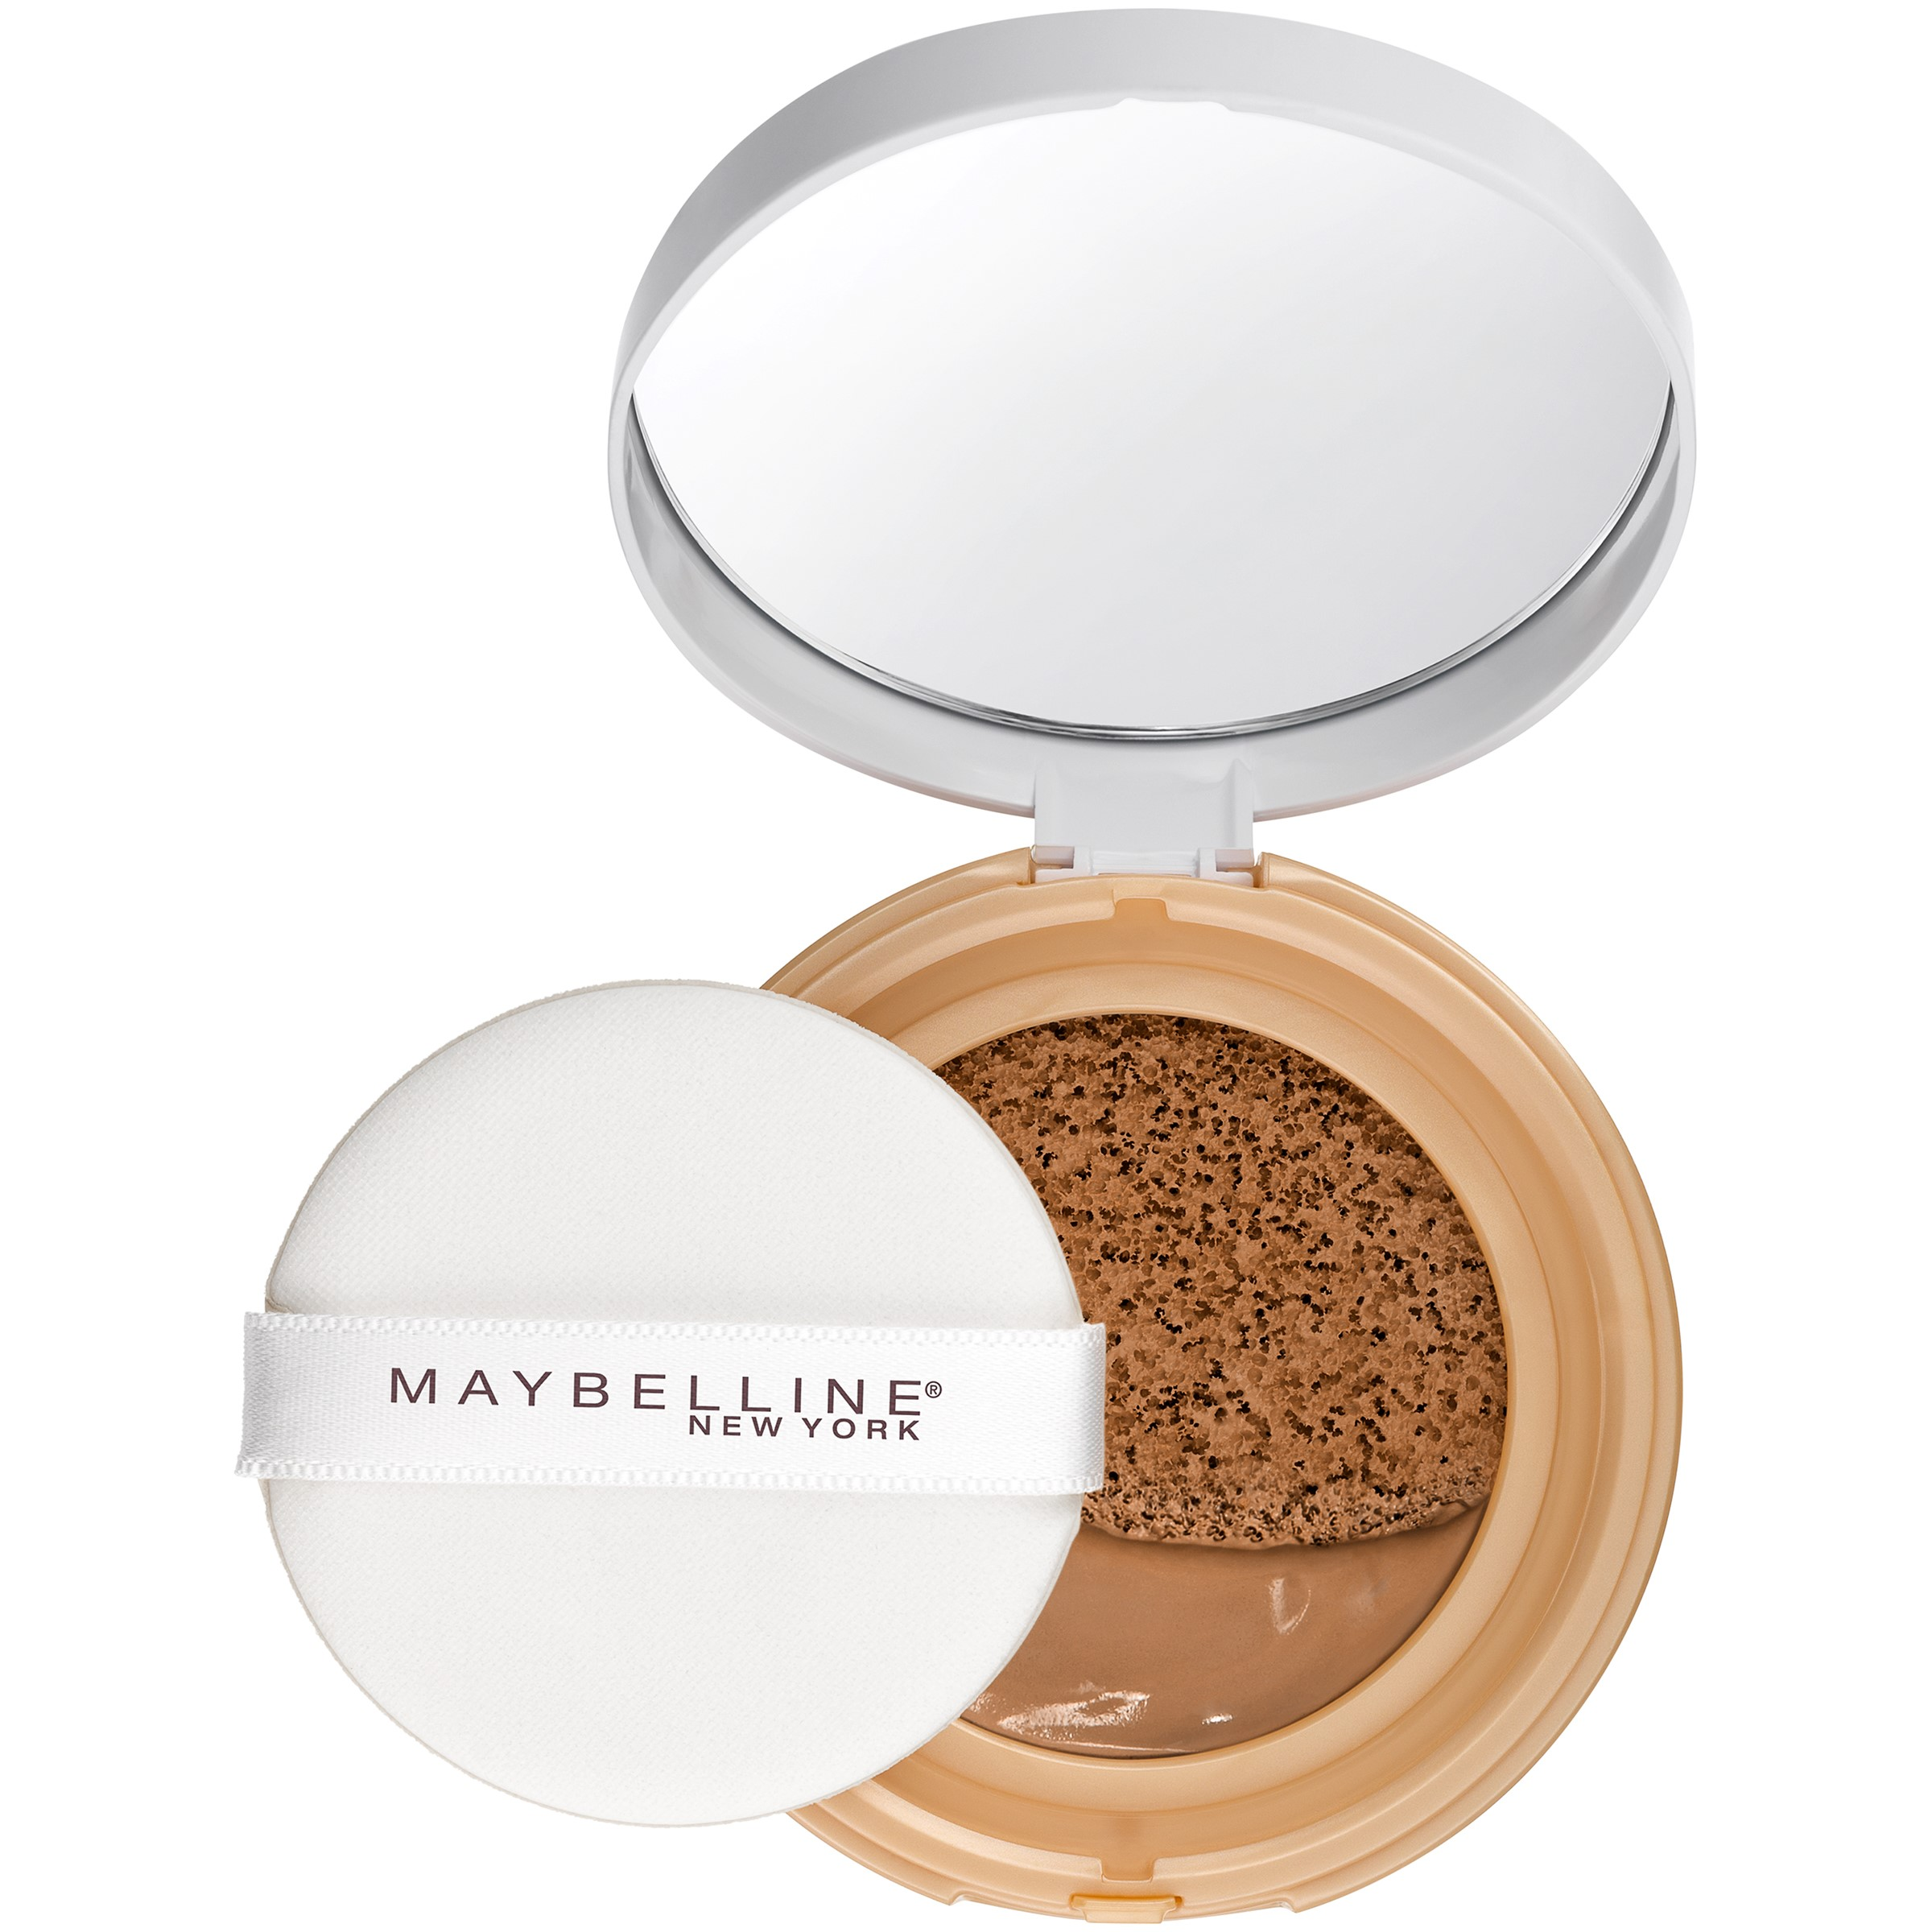 Maybelline new york dream cushion fresh face liquid foundation maybelline new york dream cushion fresh face liquid foundation classic ivory walmart geenschuldenfo Image collections